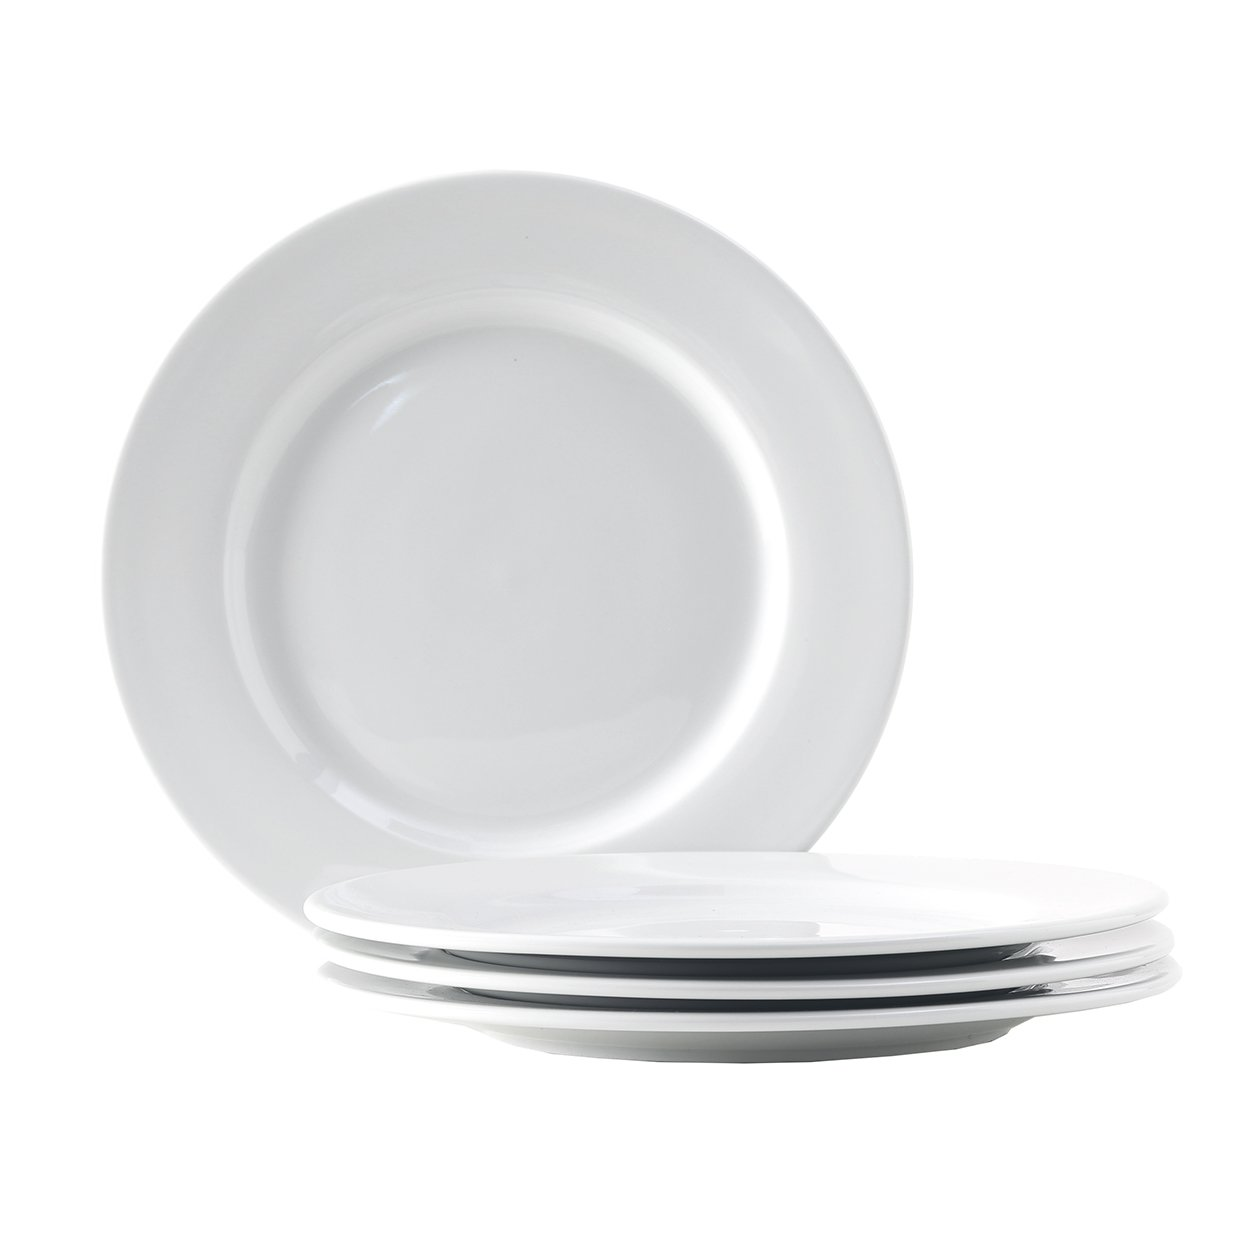 """Tuxton Home Alaska Porcelain White 10-1/2"""" Wide Rim Dinner Plate - Set of 4; Heavy Duty; Chip Resistant; Lead and Cadmium Free; Freezer to Oven Safe up to 500F"""